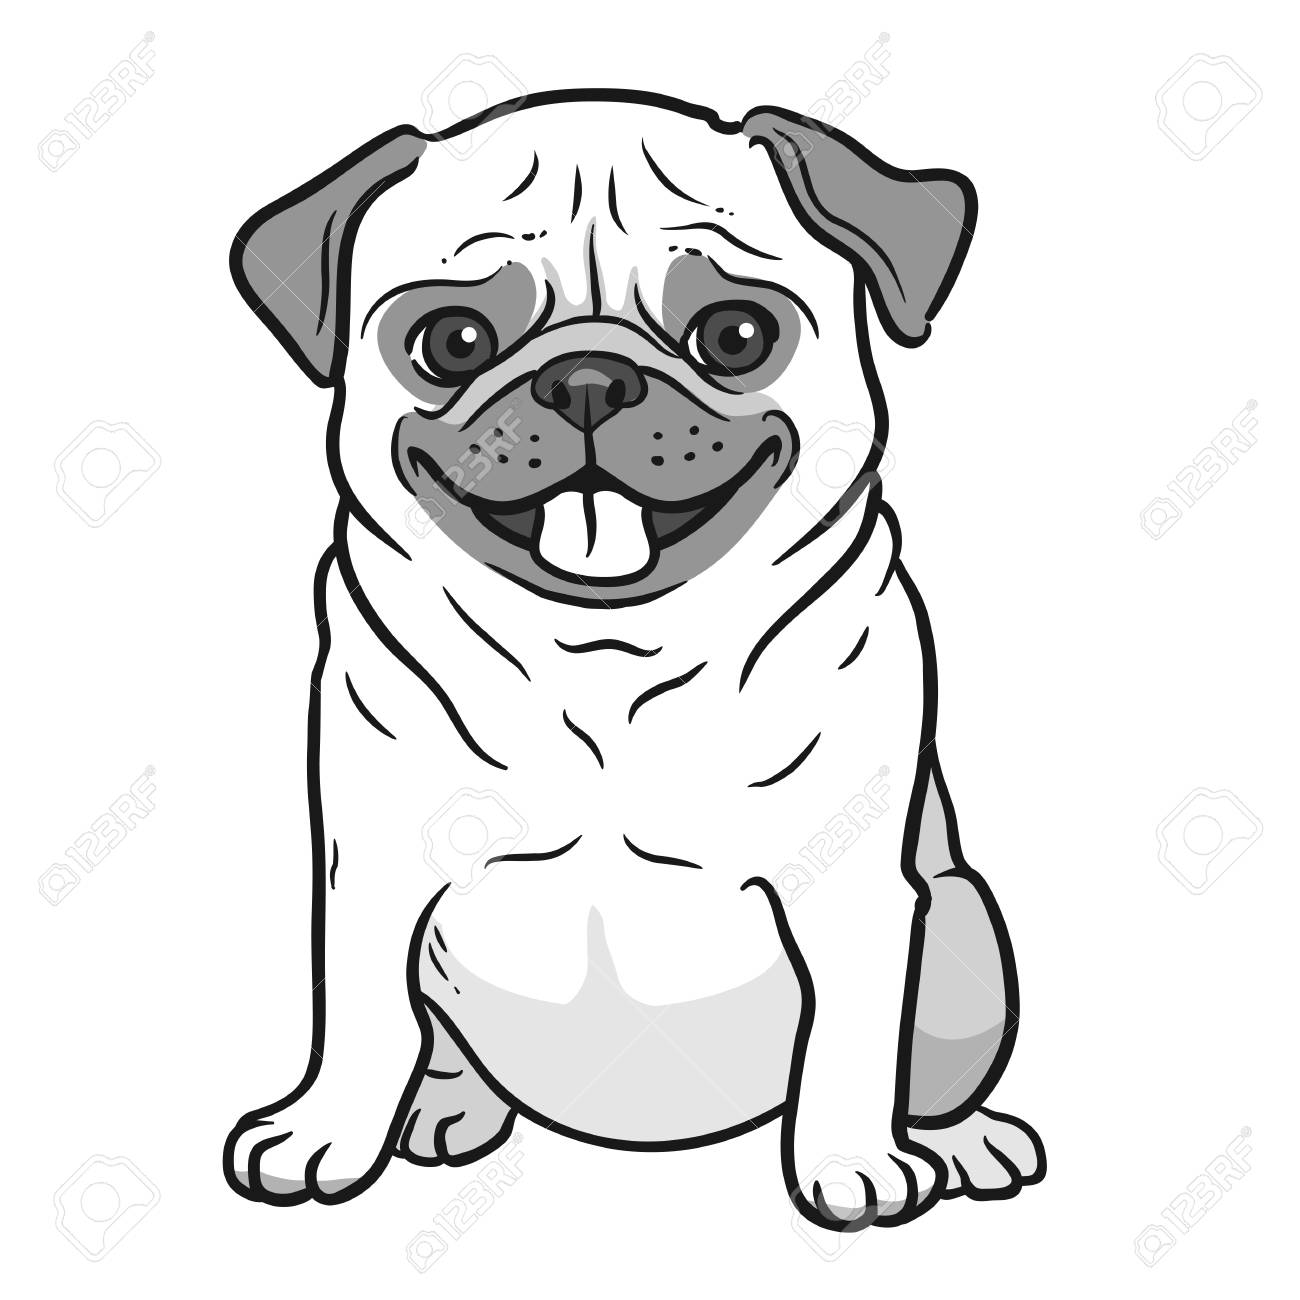 Pug 8x10 FT Photo Backdrops,Cartoon Pug Dog Caricature with Its Tongue Out Happy Face Animal Fun Illustration Background for Child Baby Shower Photo Vinyl Studio Prop Photobooth Photoshoot